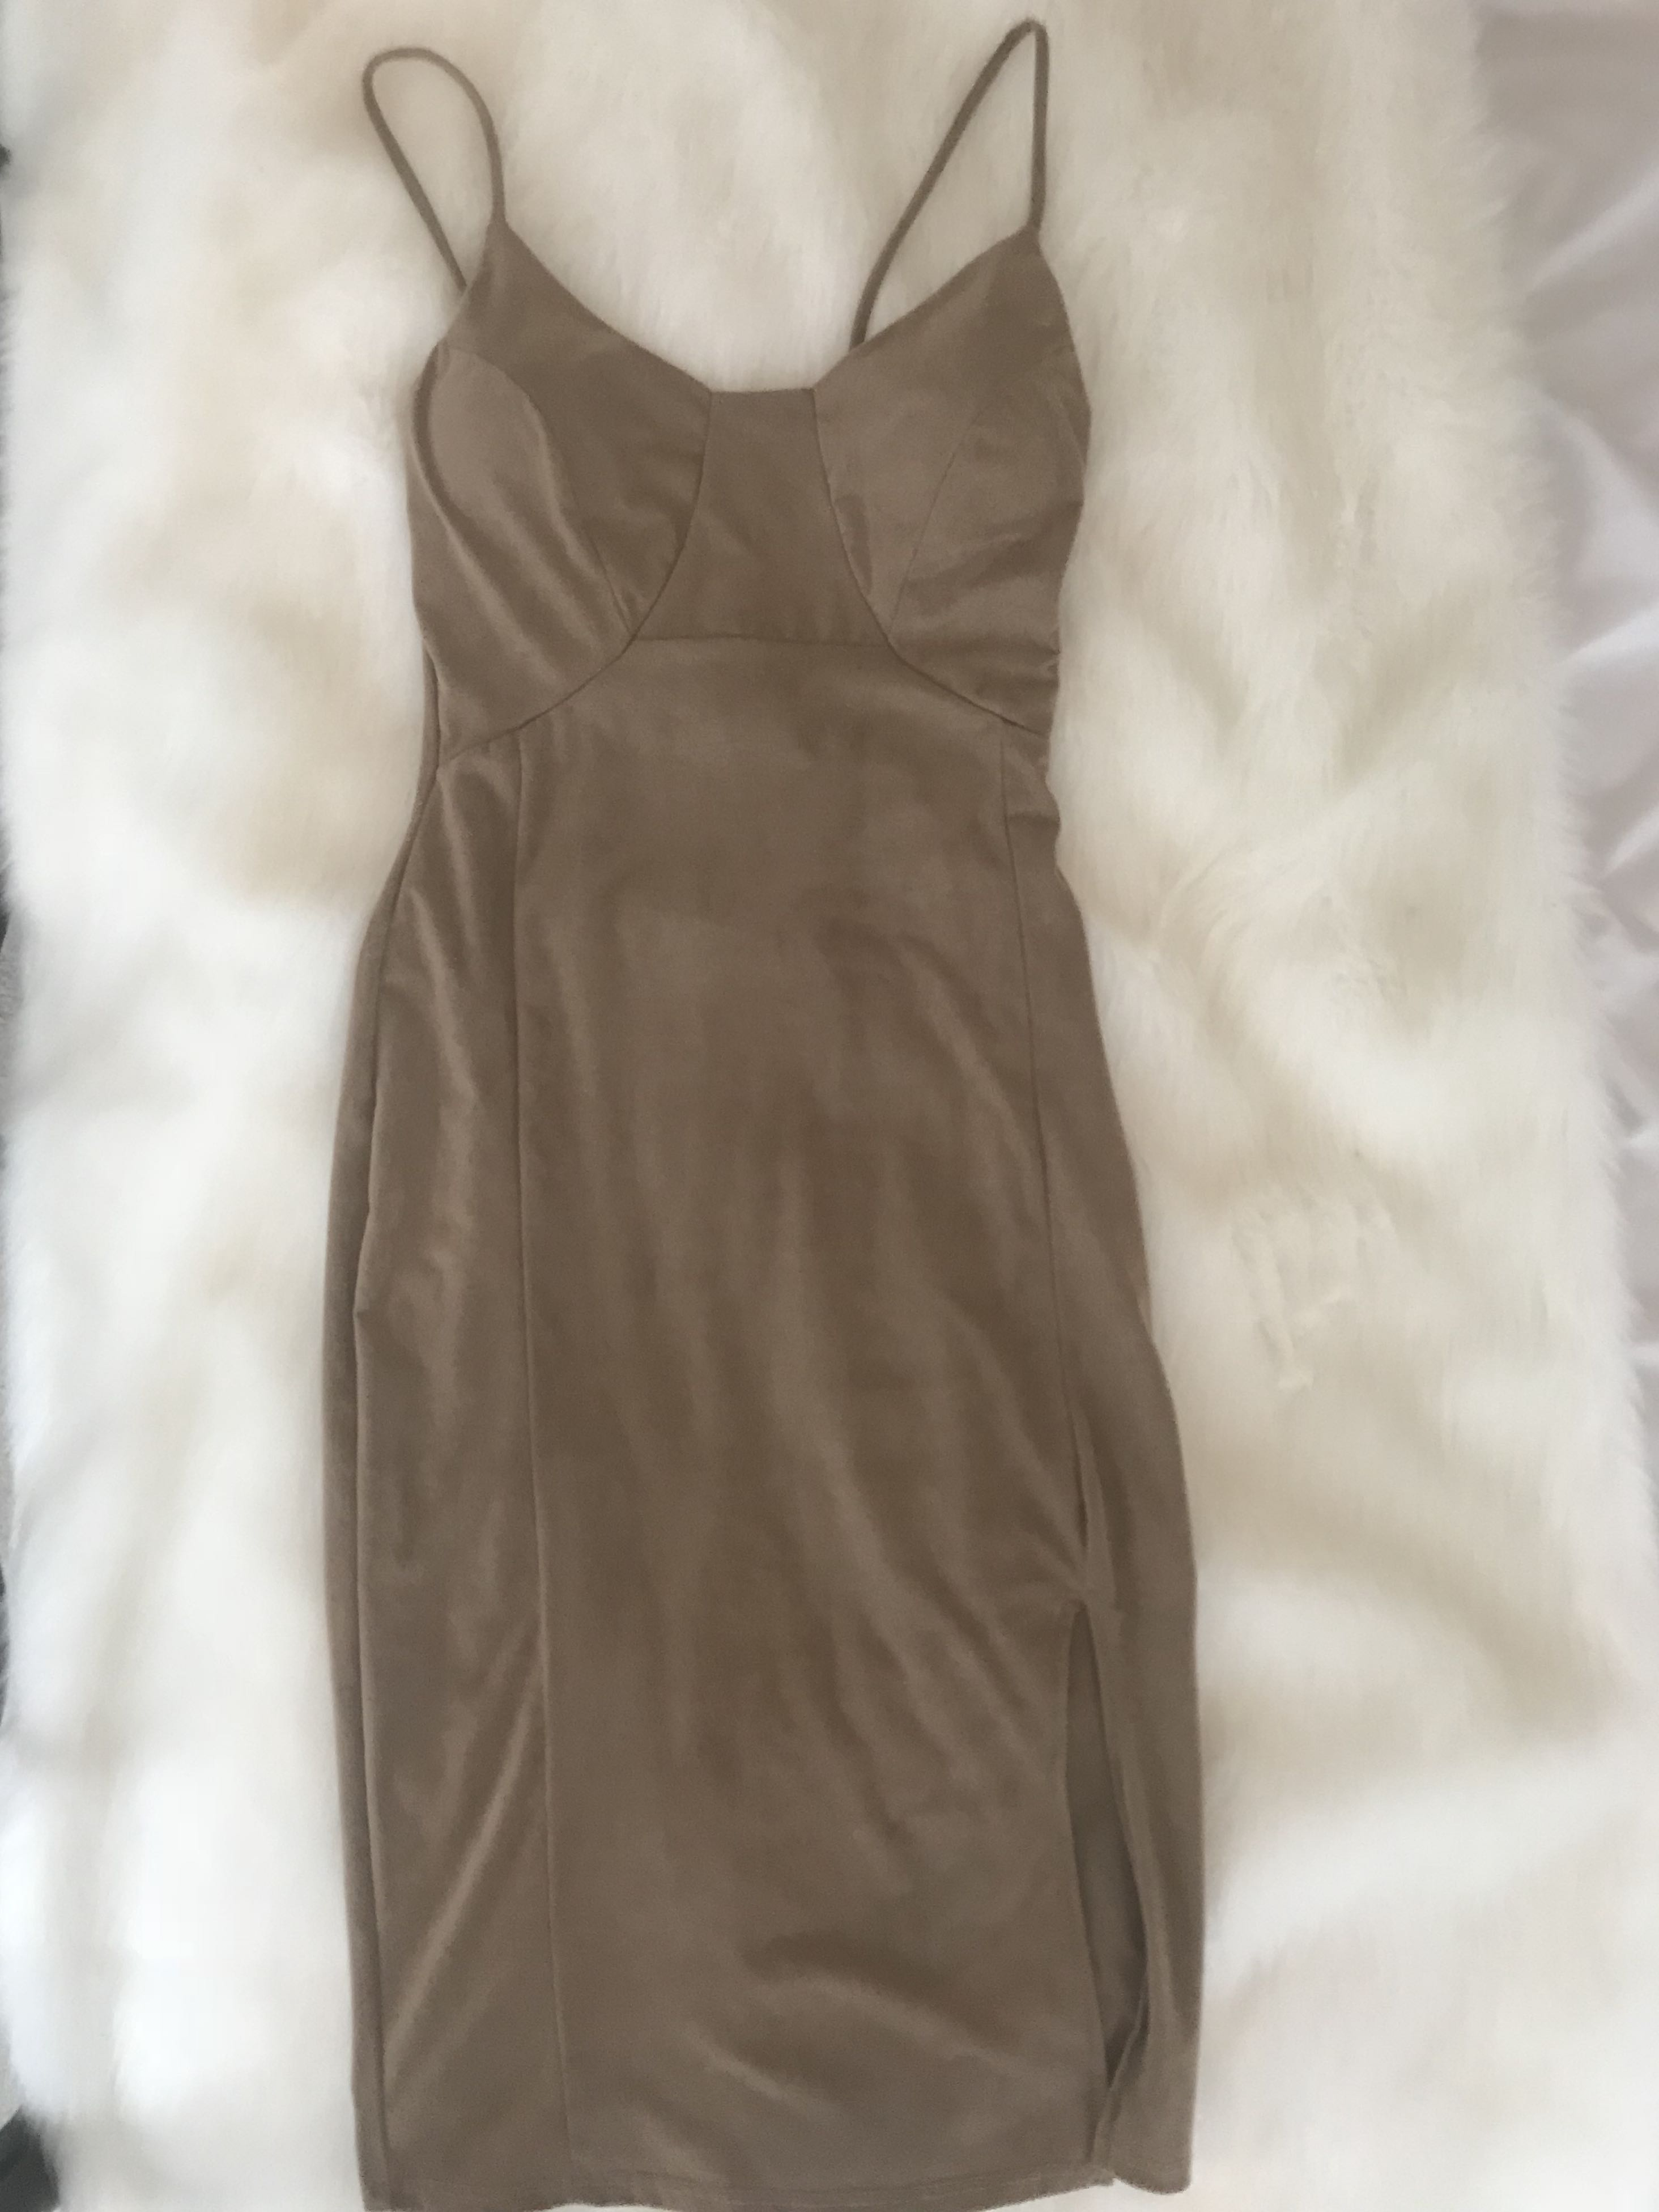 Faux Suede Fitted Midi Dress SIZE SMALL from M Botique